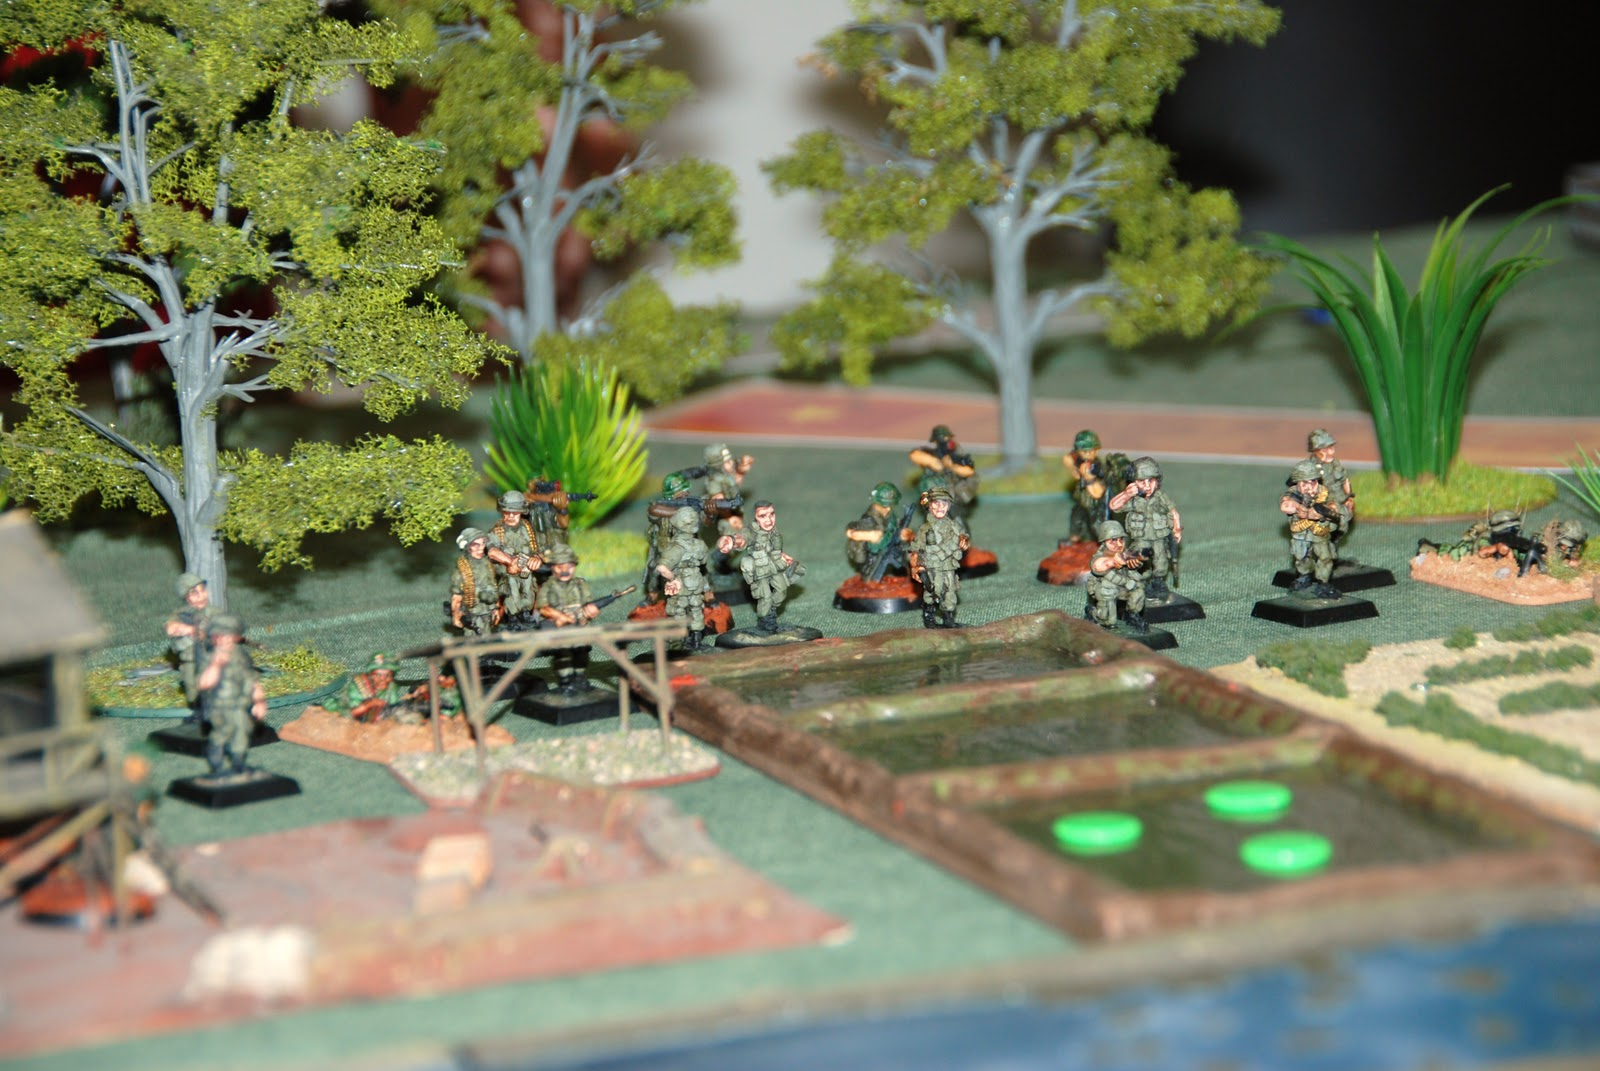 The other platoon moved to its left and deployed along a line of rice fields.